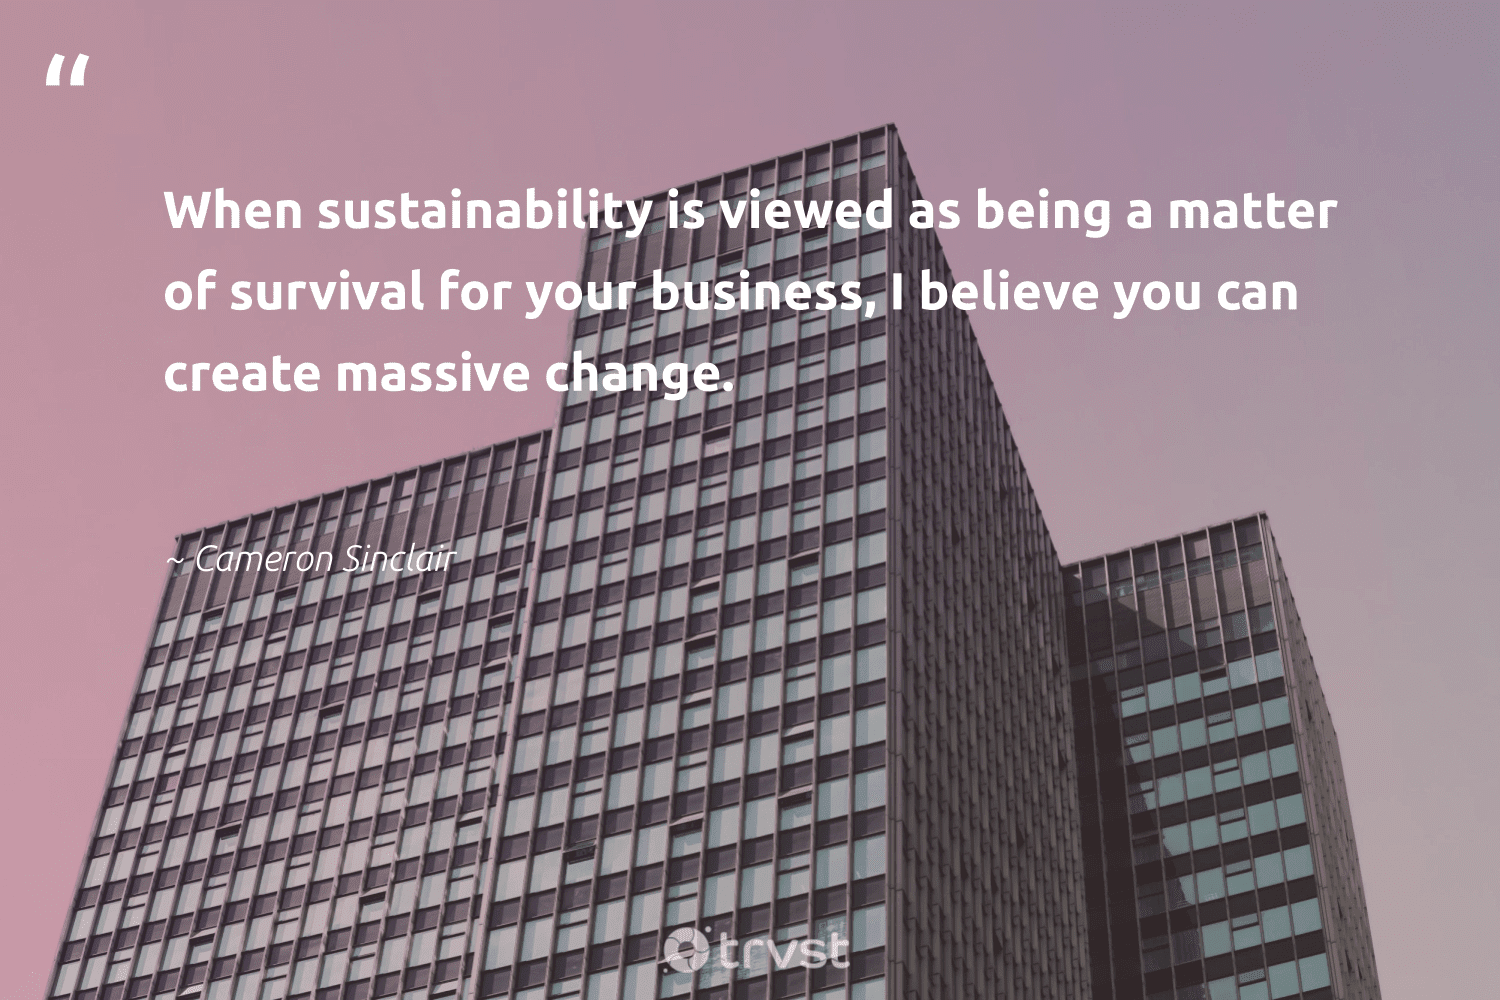 """""""When sustainability is viewed as being a matter of survival for your business, I believe you can create massive change.""""  - Cameron Sinclair #trvst #quotes #sustainability #sustainableliving #dogood #bethechange #changetheworld #sustainable #weareallone #greenliving #planetearthfirst #ecofriendly"""